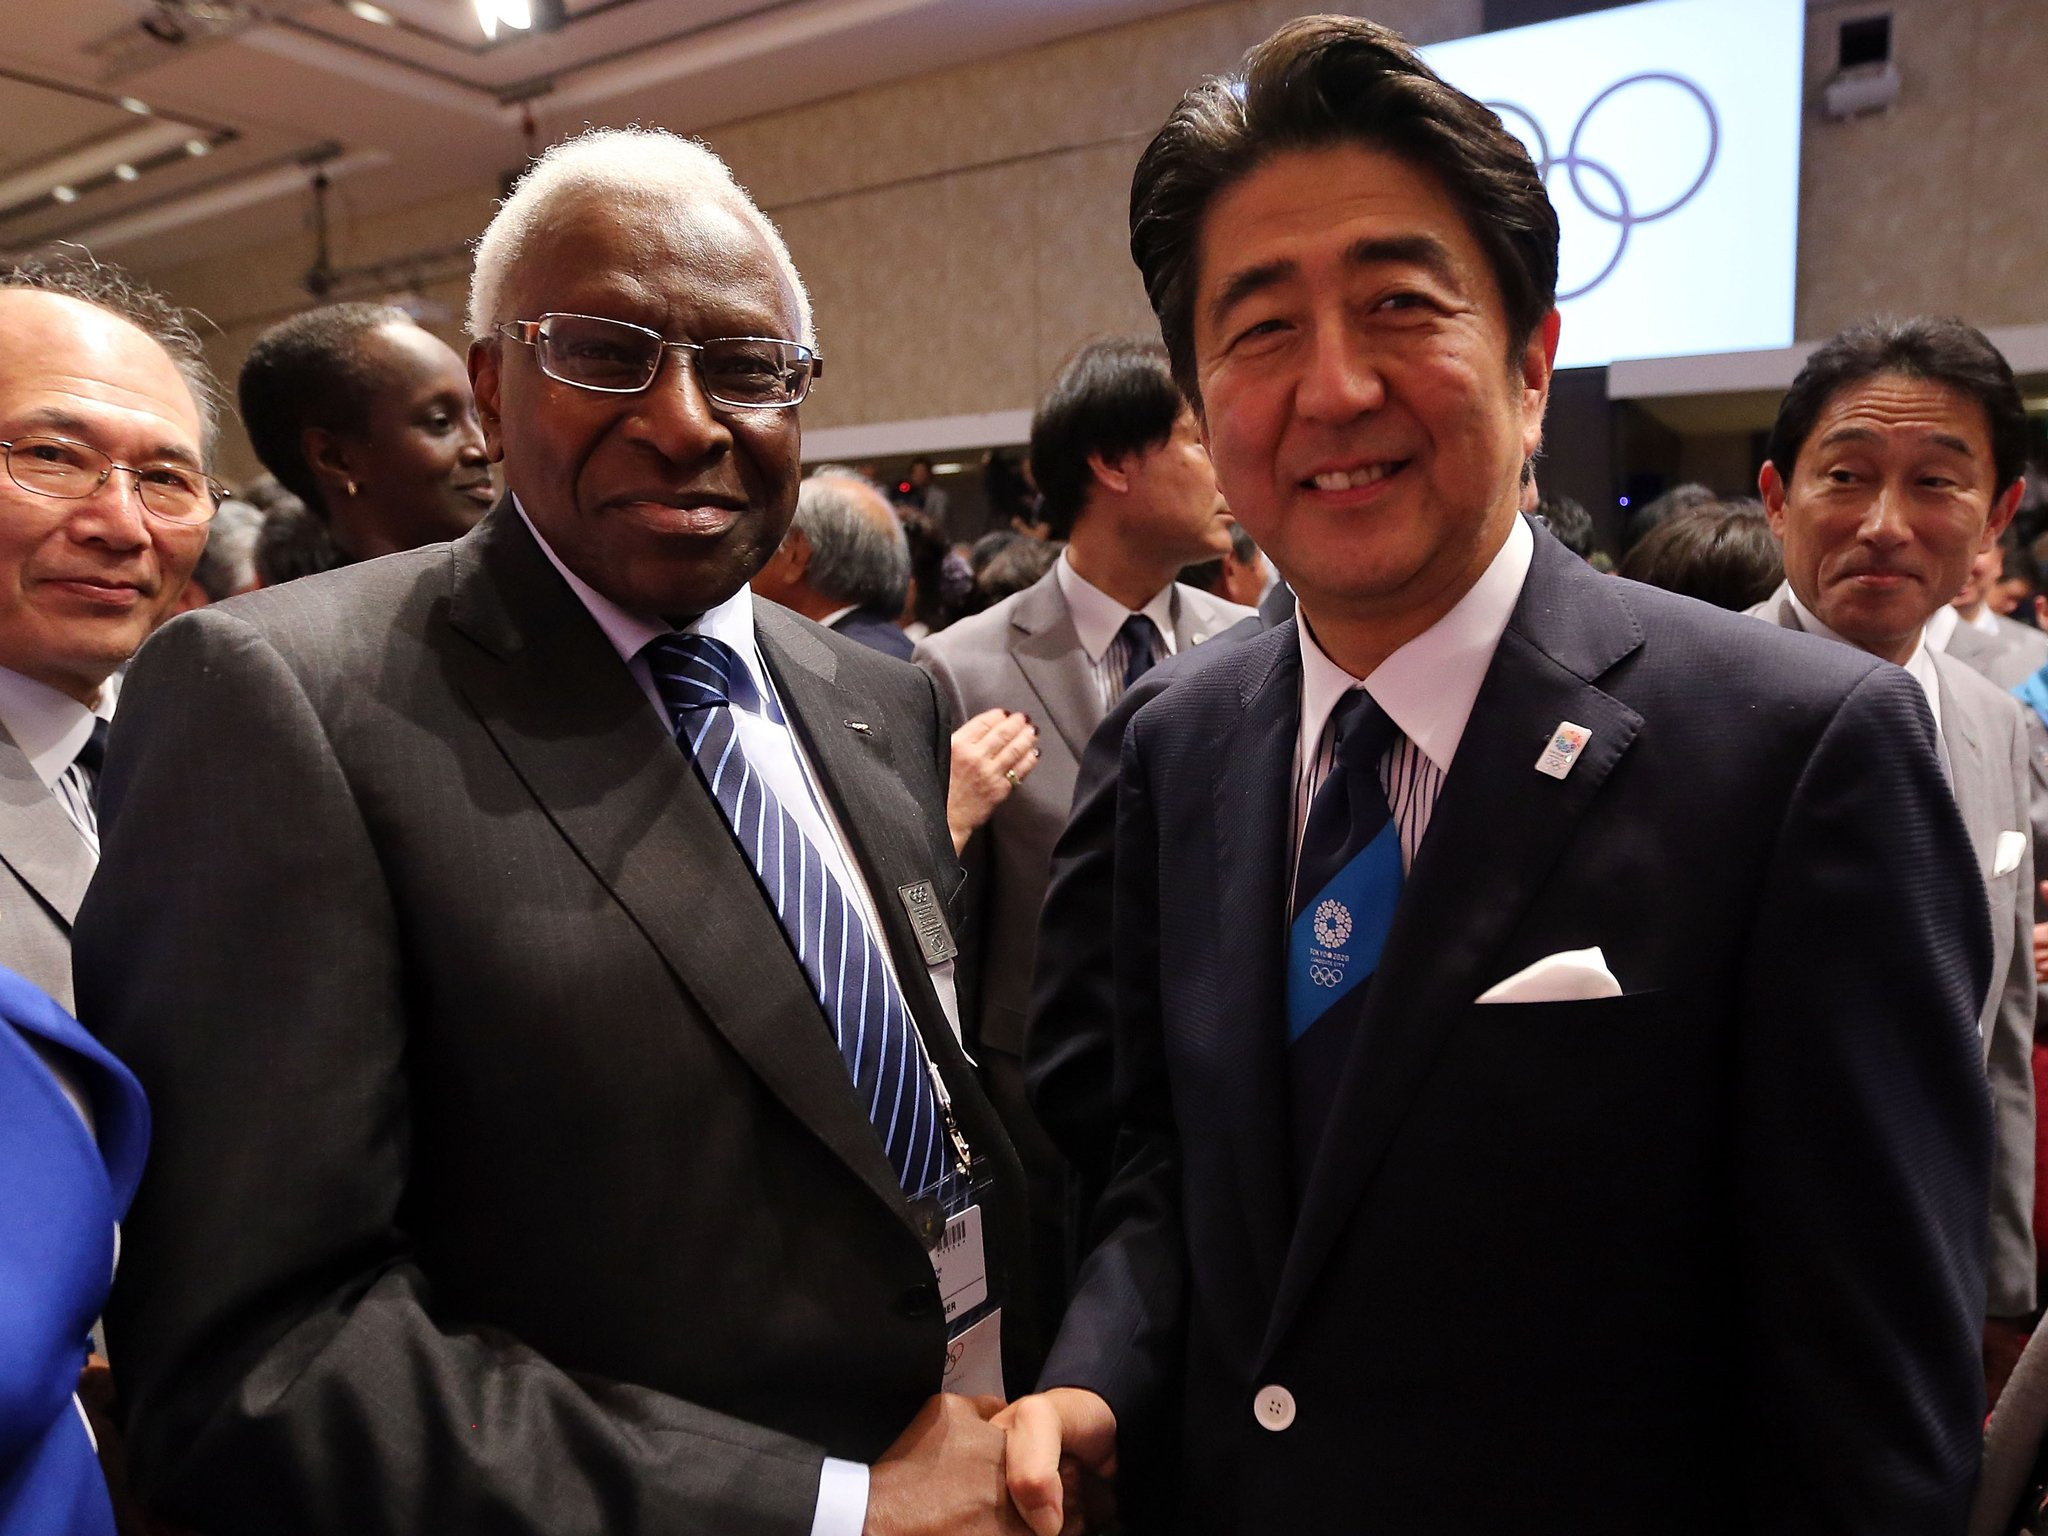 Lamine Diack, pictured with Japanese Prime Minister Shinzō Abe, is accused of trying to influence the vote in 2013 so that Tokyo won its bid to host the 2020 Olympic and Paralympic Games ©Getty Images